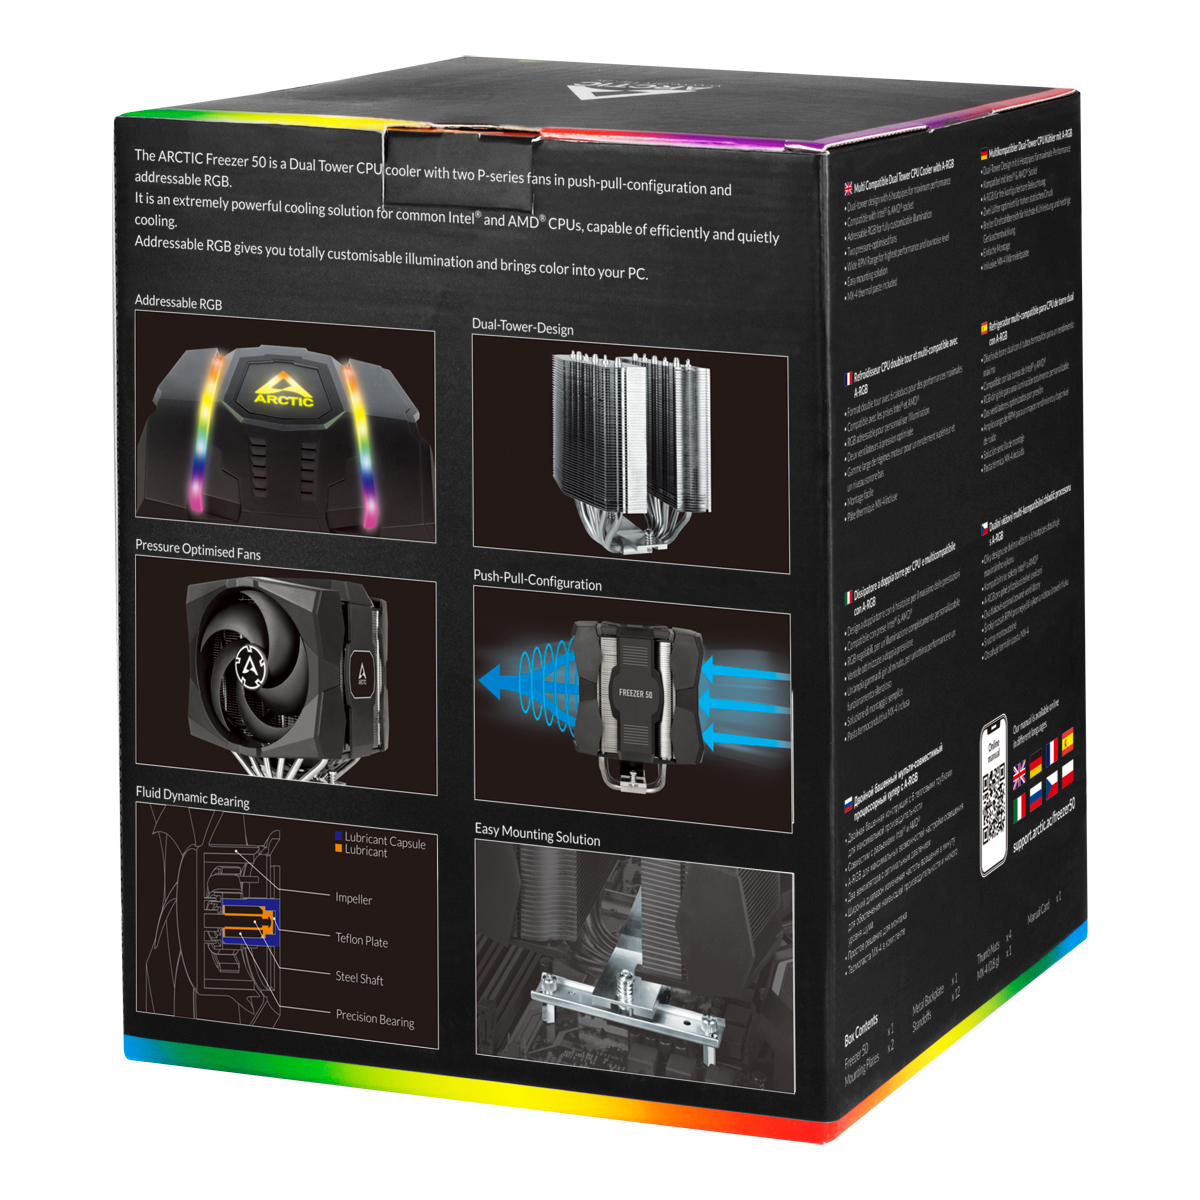 Multi Compatible Dual Tower CPU Cooler with A-RGB  ARCTIC Freezer 50 Packaging Rear View